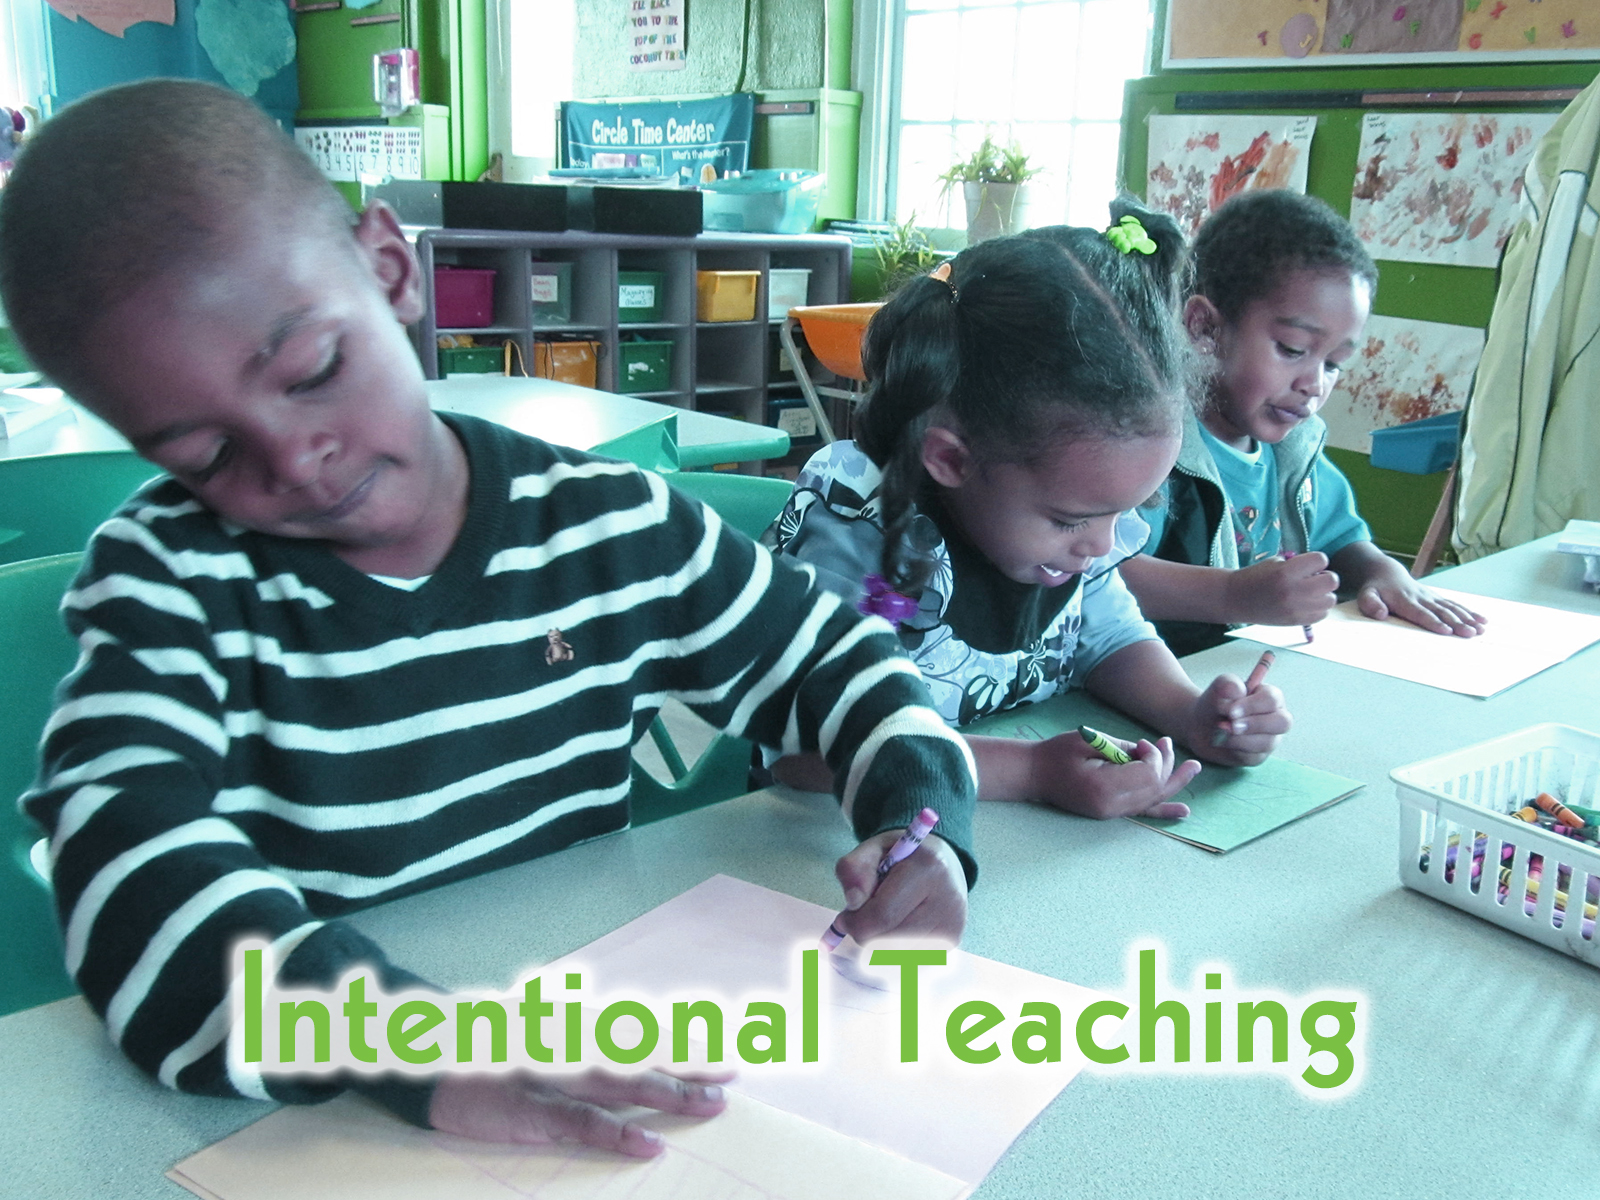 CELC2_IntentionalTeaching